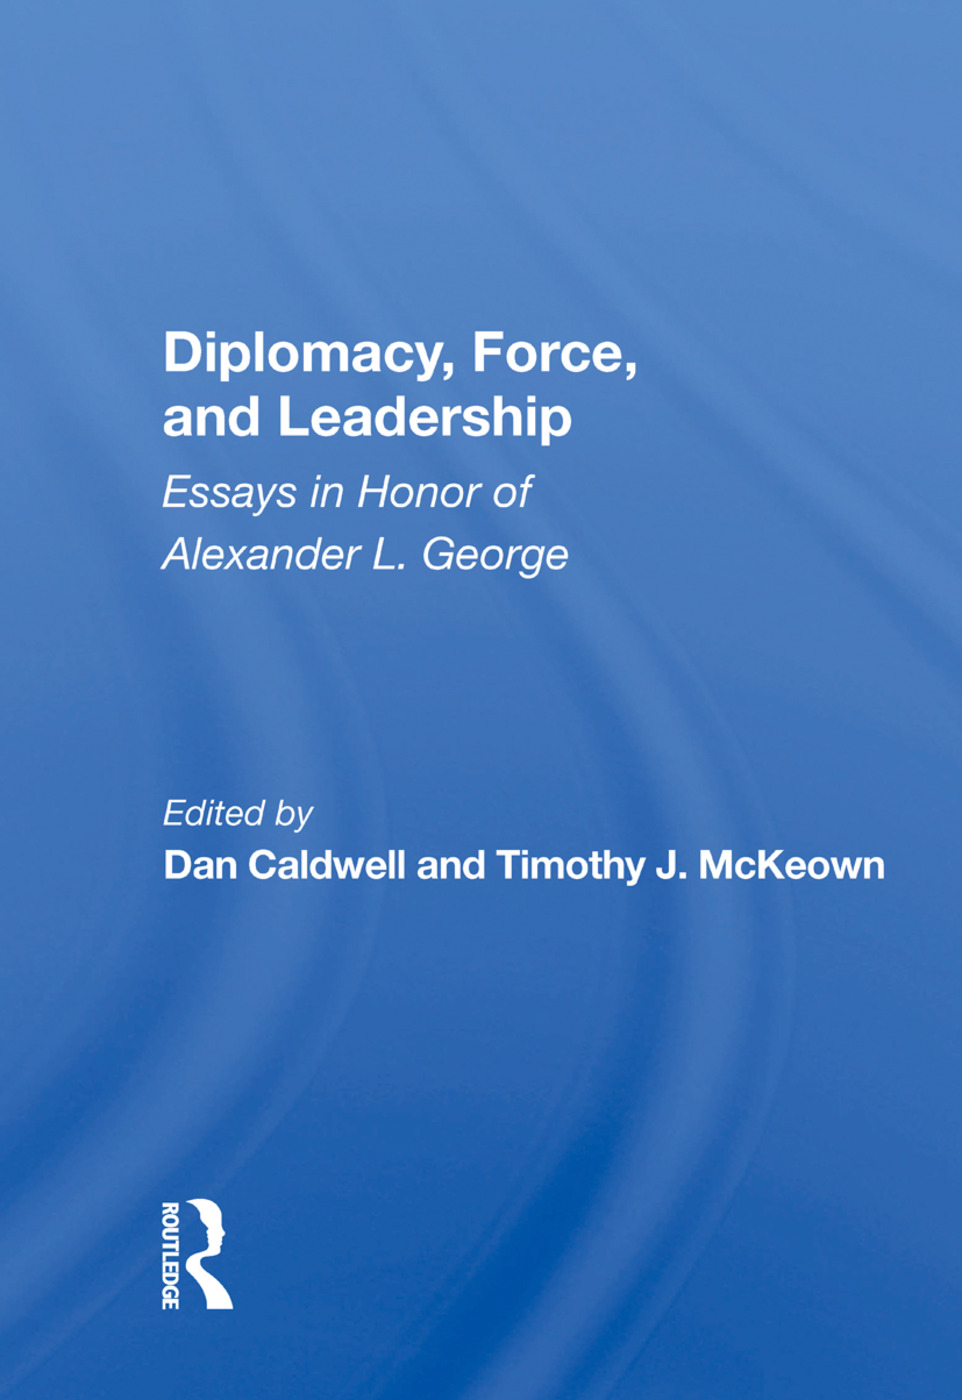 Avoiding Pathologies in Foreign Policy Decision Groups